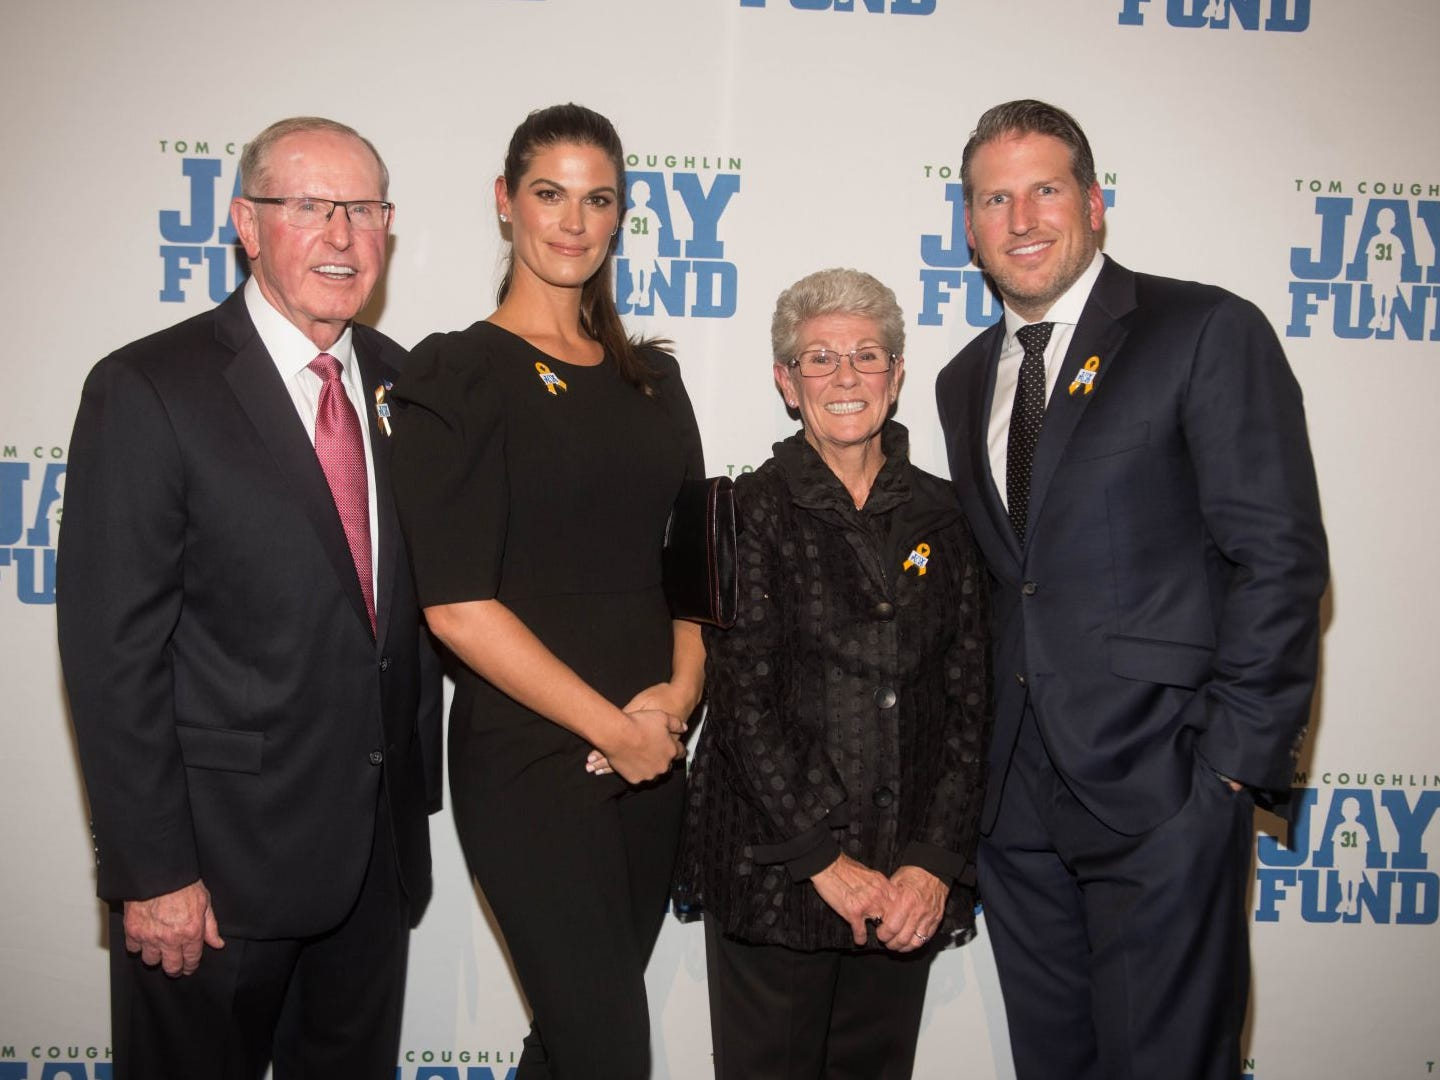 Tom Coughlin, Caroline Greisen, Judy Coughlin and Nick Greisen. The 14th annual Jay Fund Champions for Children Gala was held at Cipriani 42nd Street. 09/21/2018